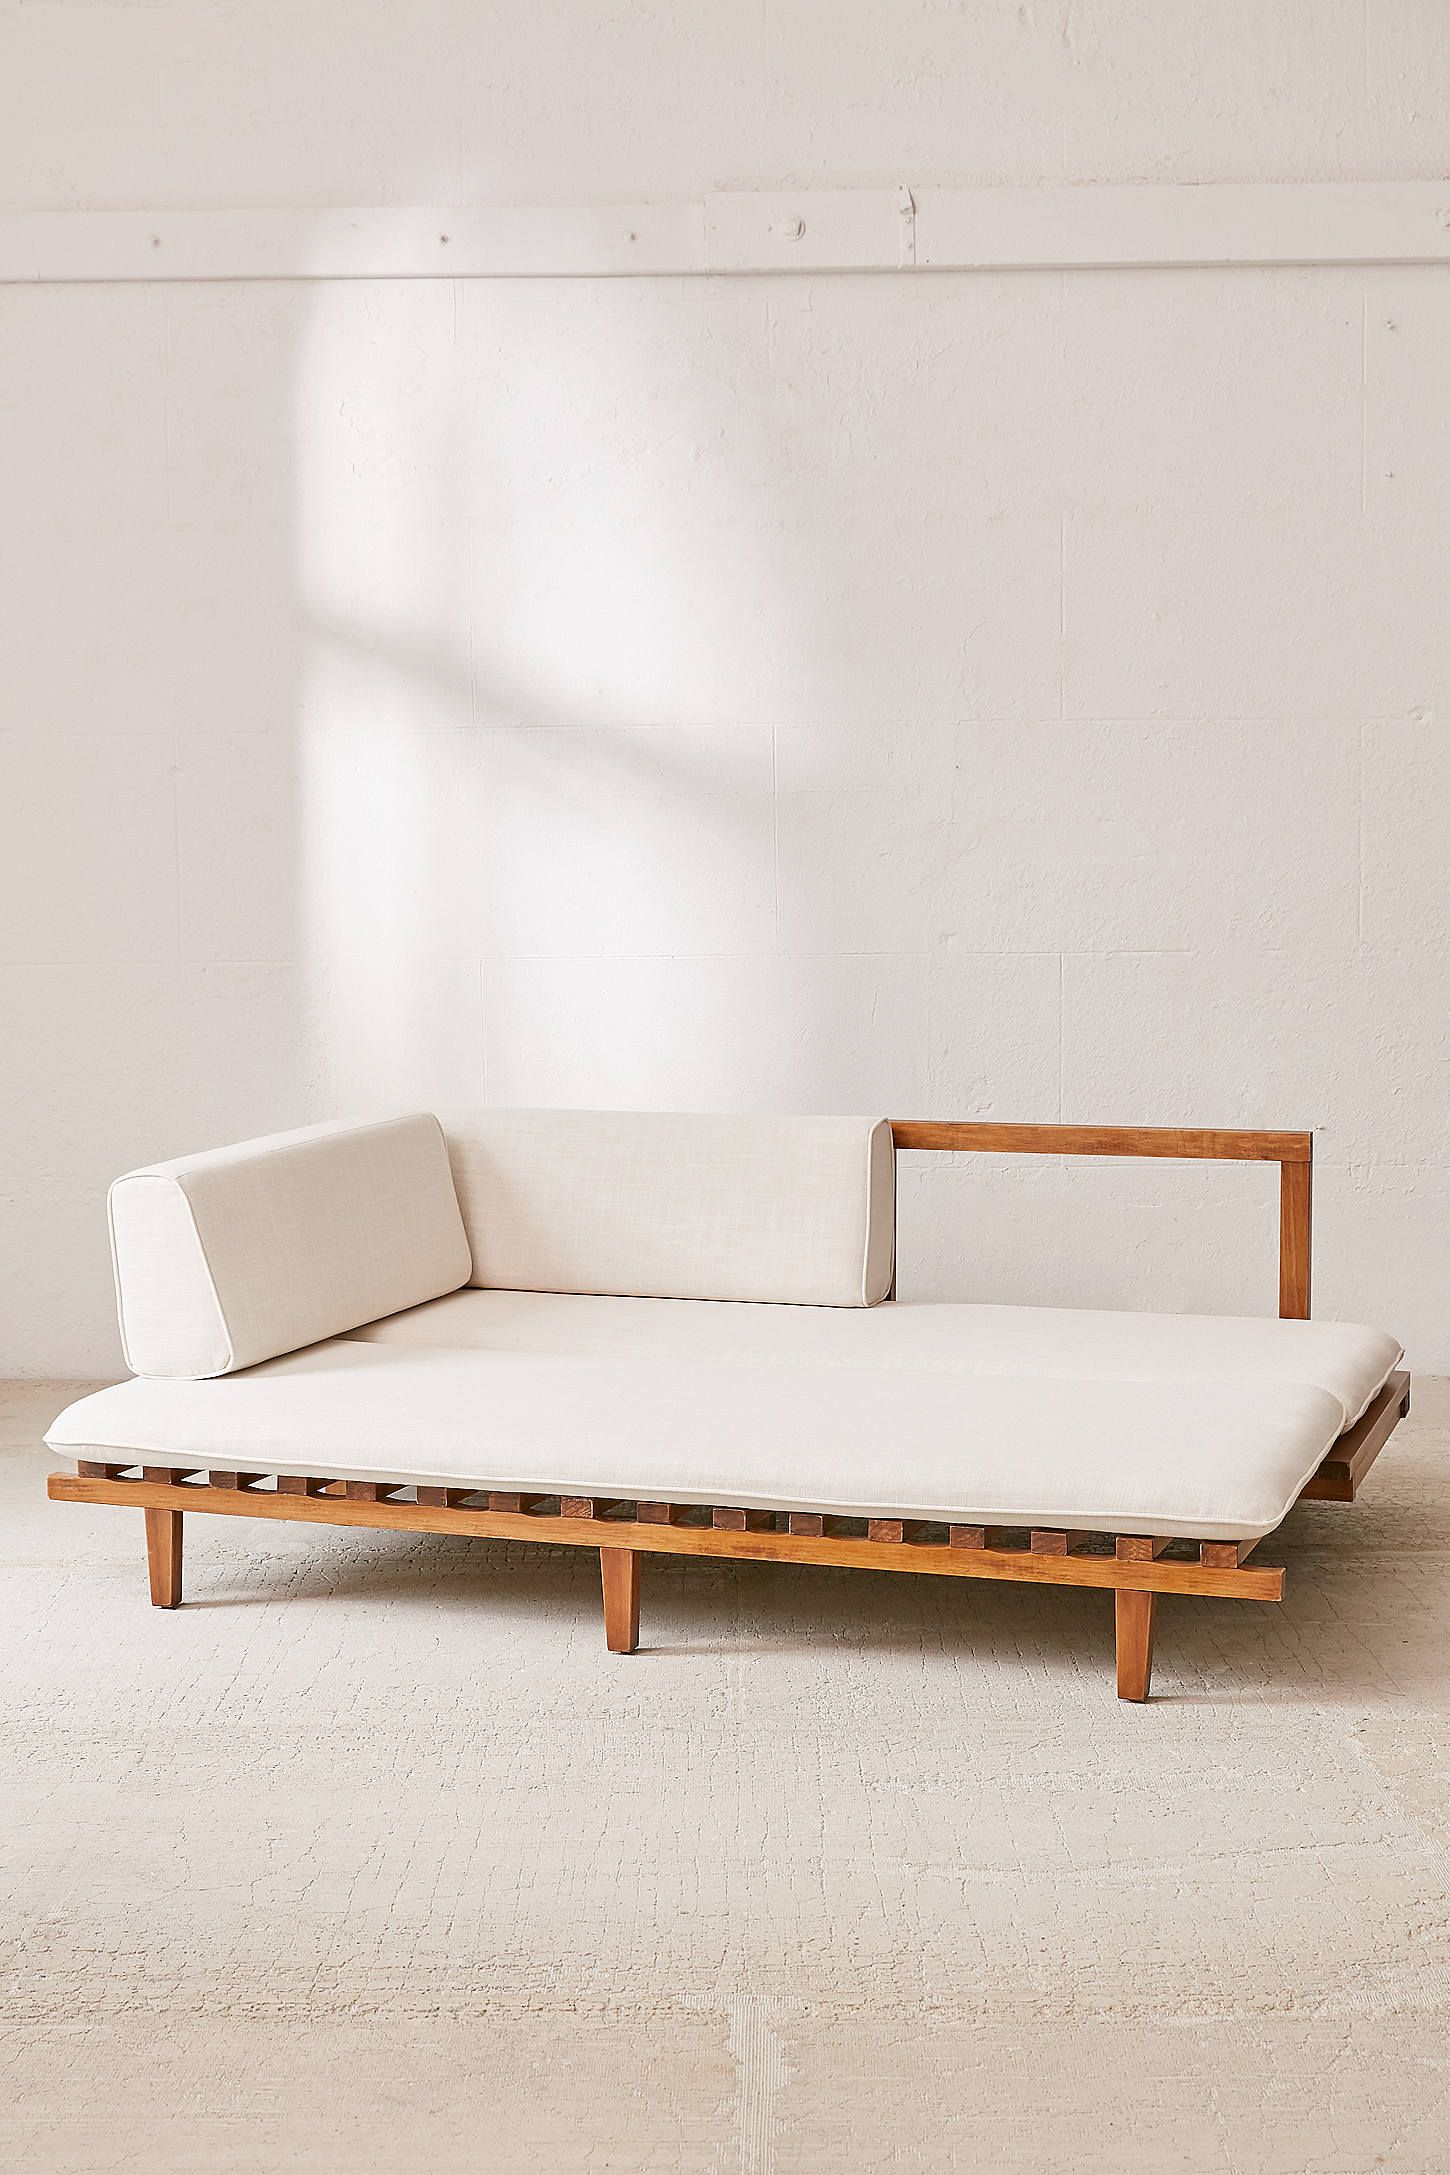 Osten Convertible Daybed Sofa Furniture Sofa Design Daybed Sofa